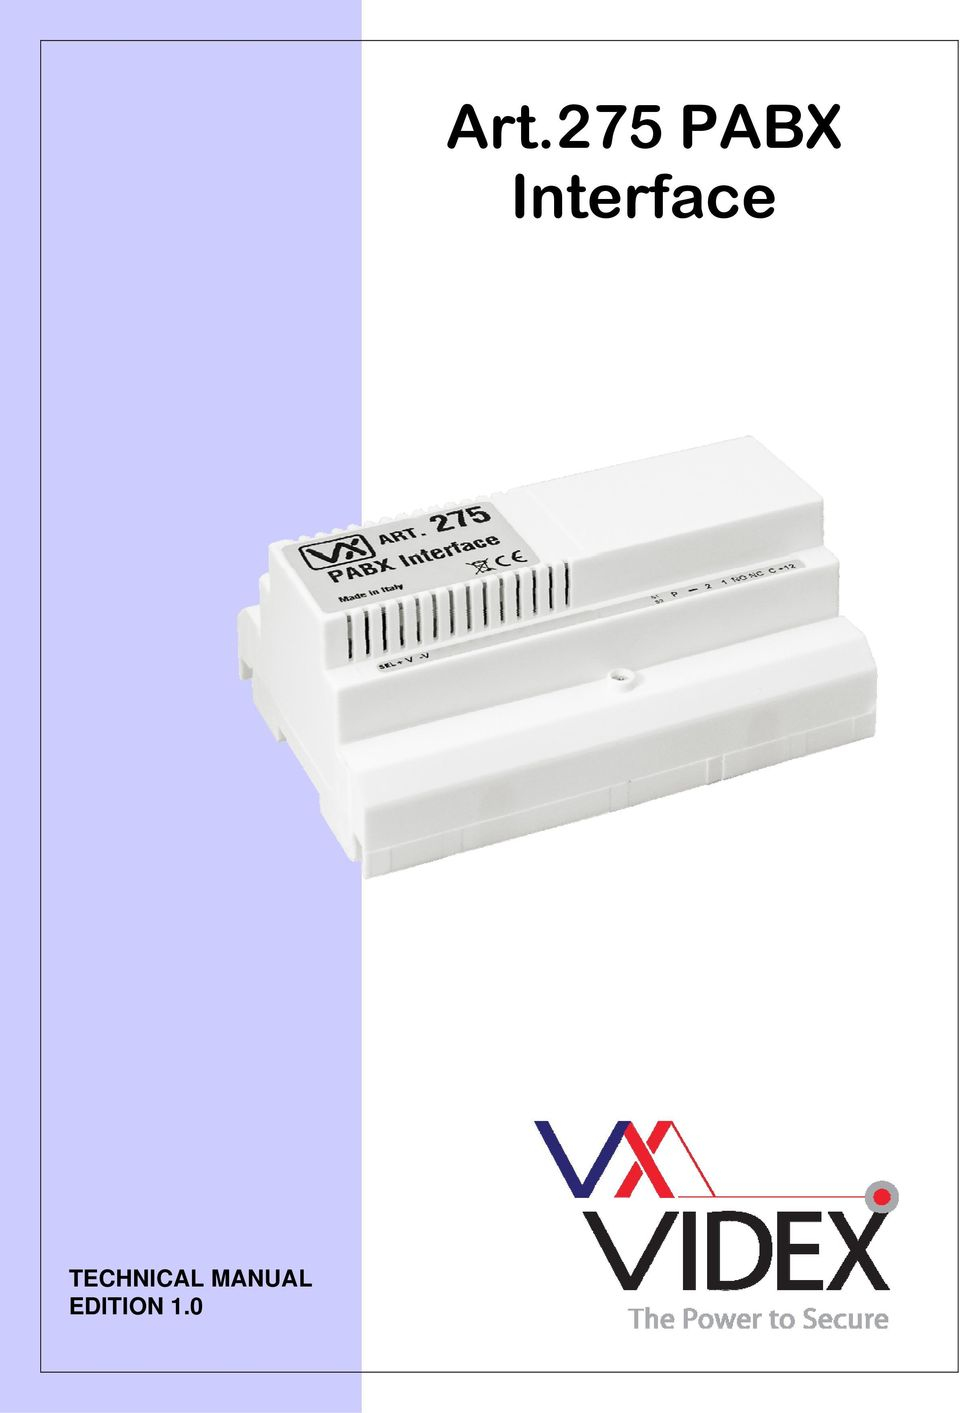 2 DESCRIPTION The Art275 Interface Enables A Videx Intercom Panel To Be Connected An Analogue Extension Port Of Telephone Switchboard PABX